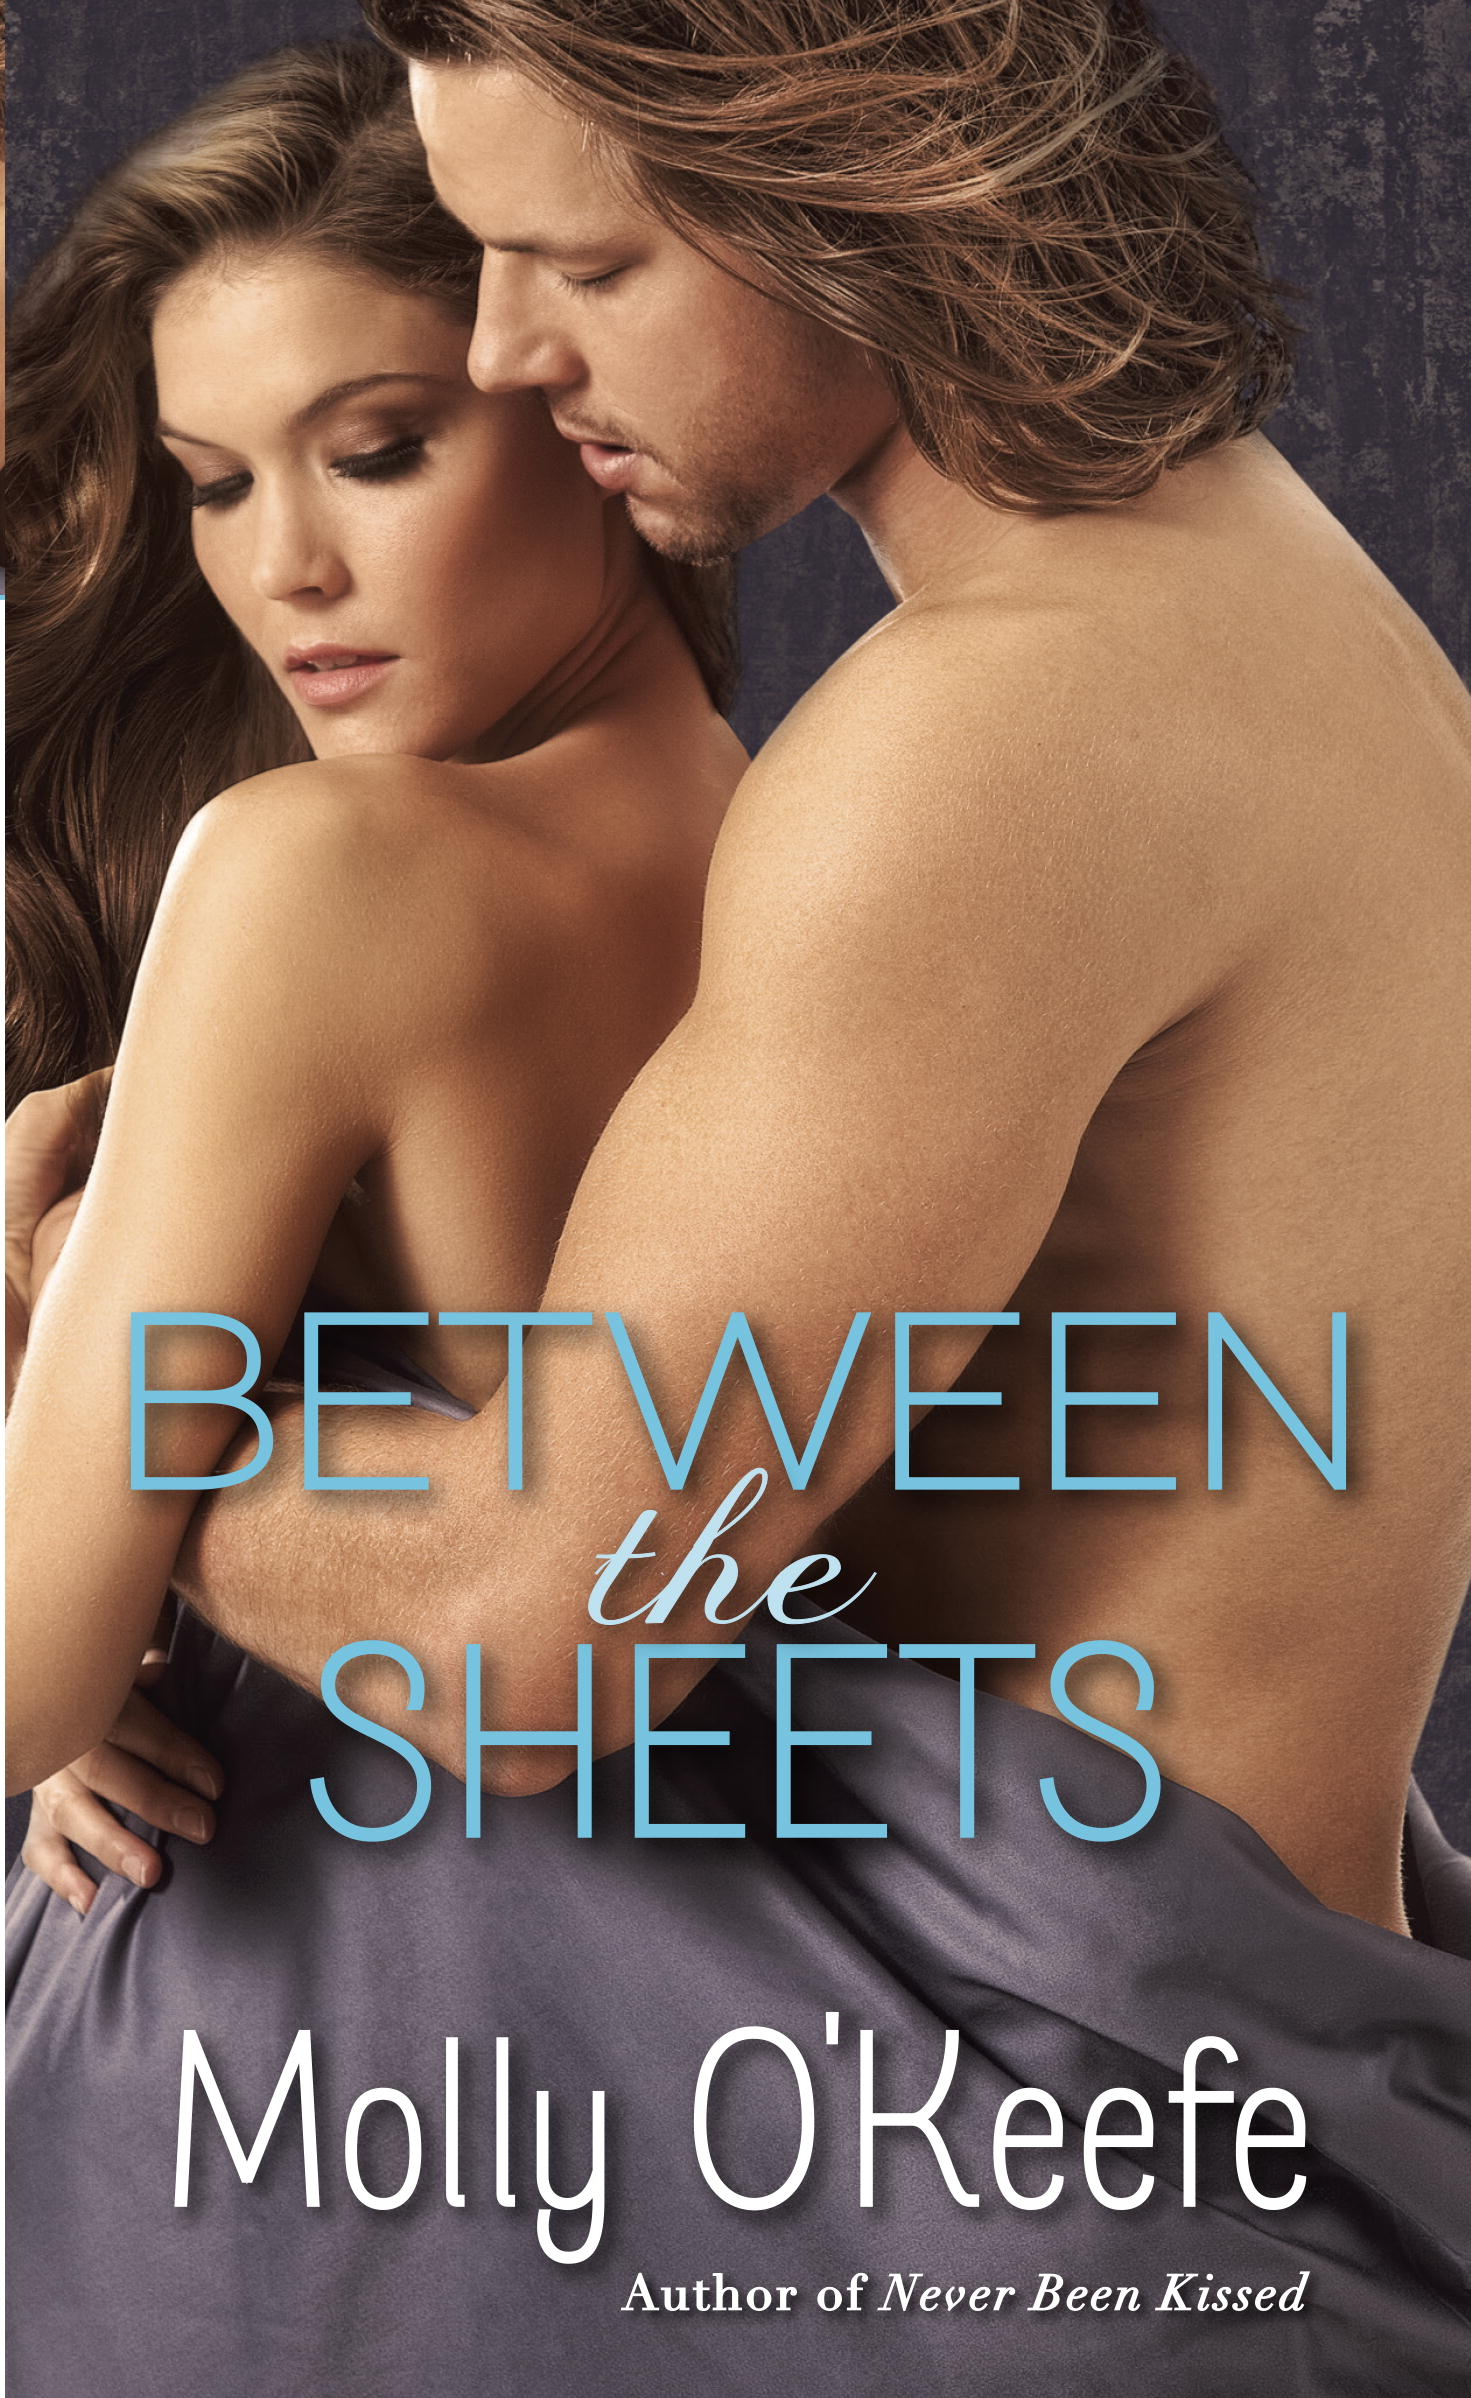 RELEASE BLITZ & GIVEAWAY: BETWEEN THE SHEETS by Molly O'Keefe